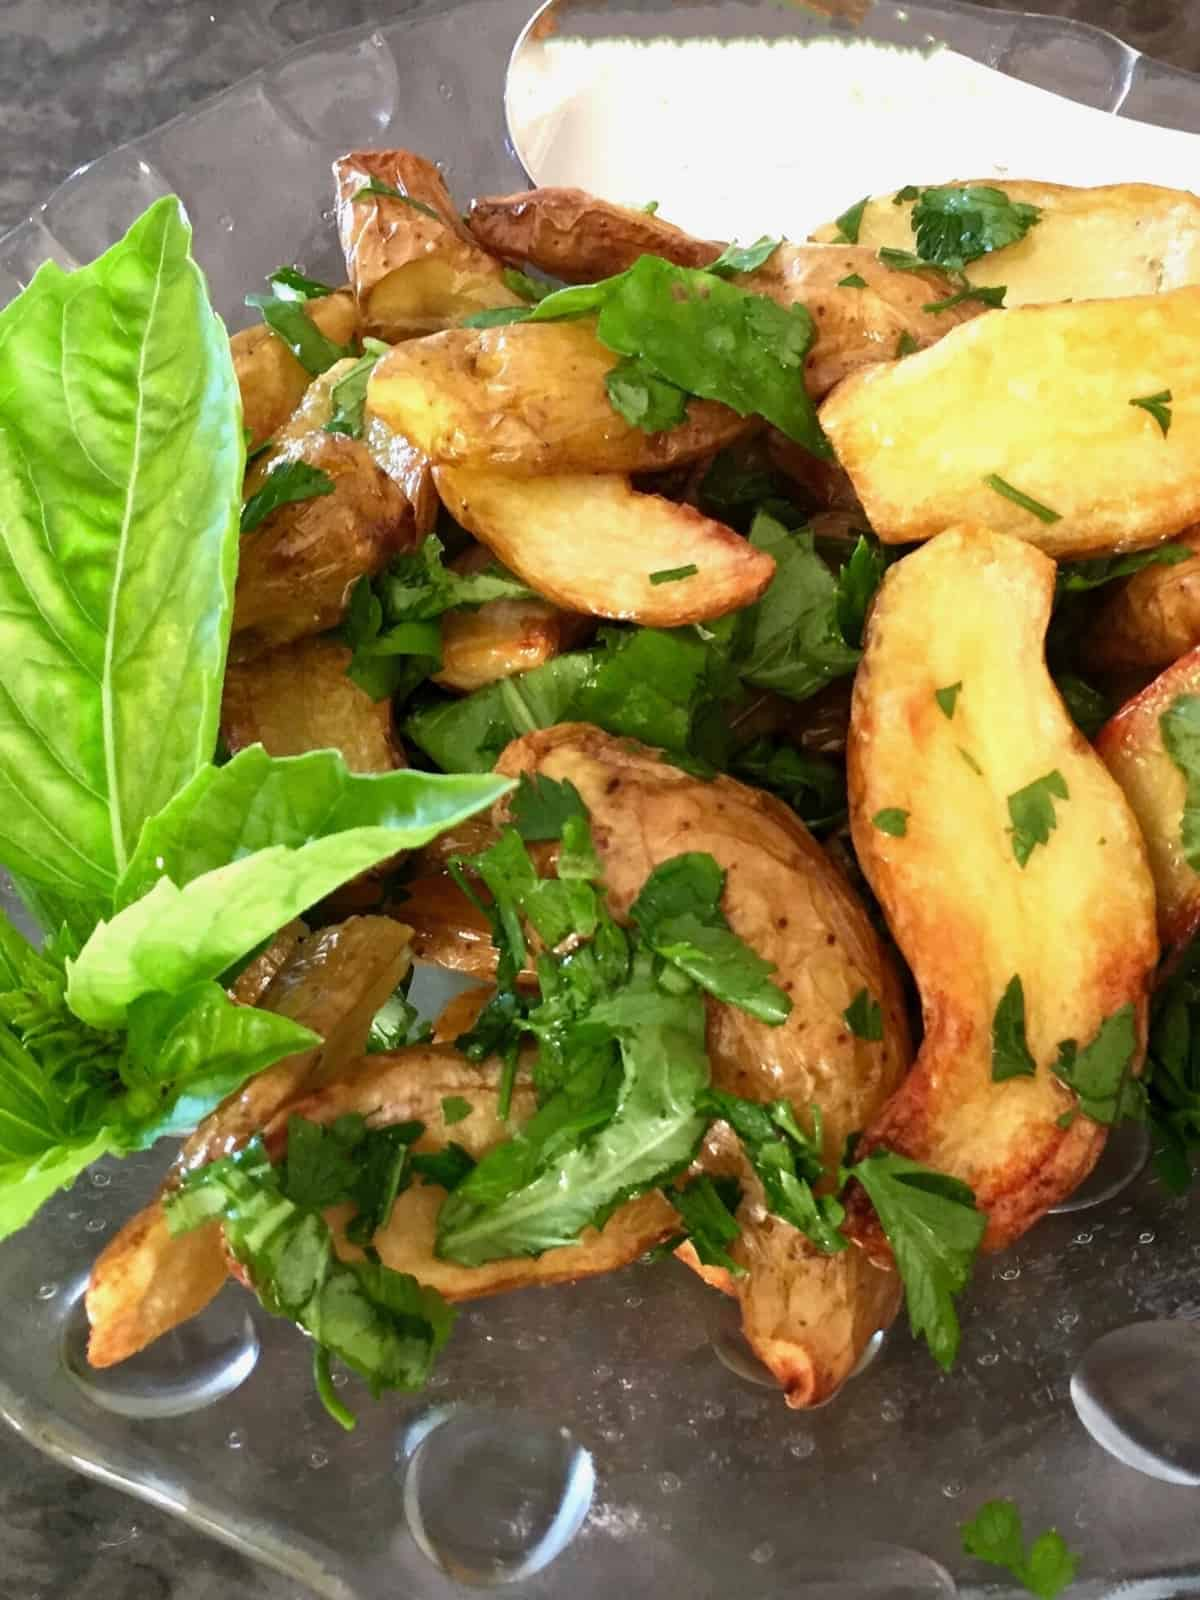 ROASTED KIPFLER POTATOES WITH HERBS